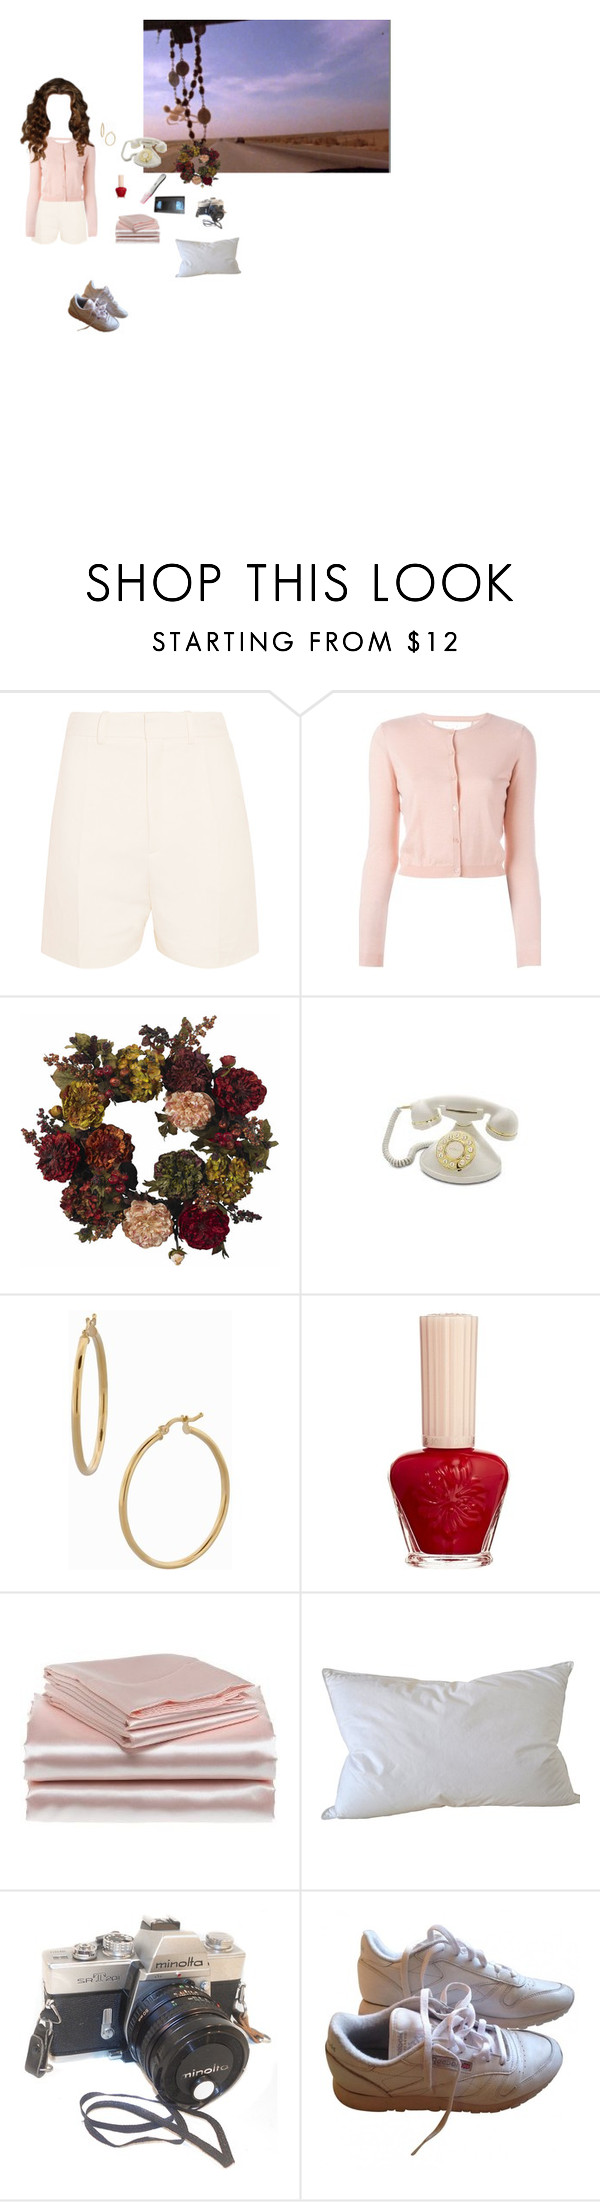 """""""1995"""" by poems-of-the-sea ❤ liked on Polyvore featuring Chloé, RED Valentino, Nearly Natural, CO, Bony Levy, Paul & Joe, Scent-Sation, Natural Comfort and Reebok"""